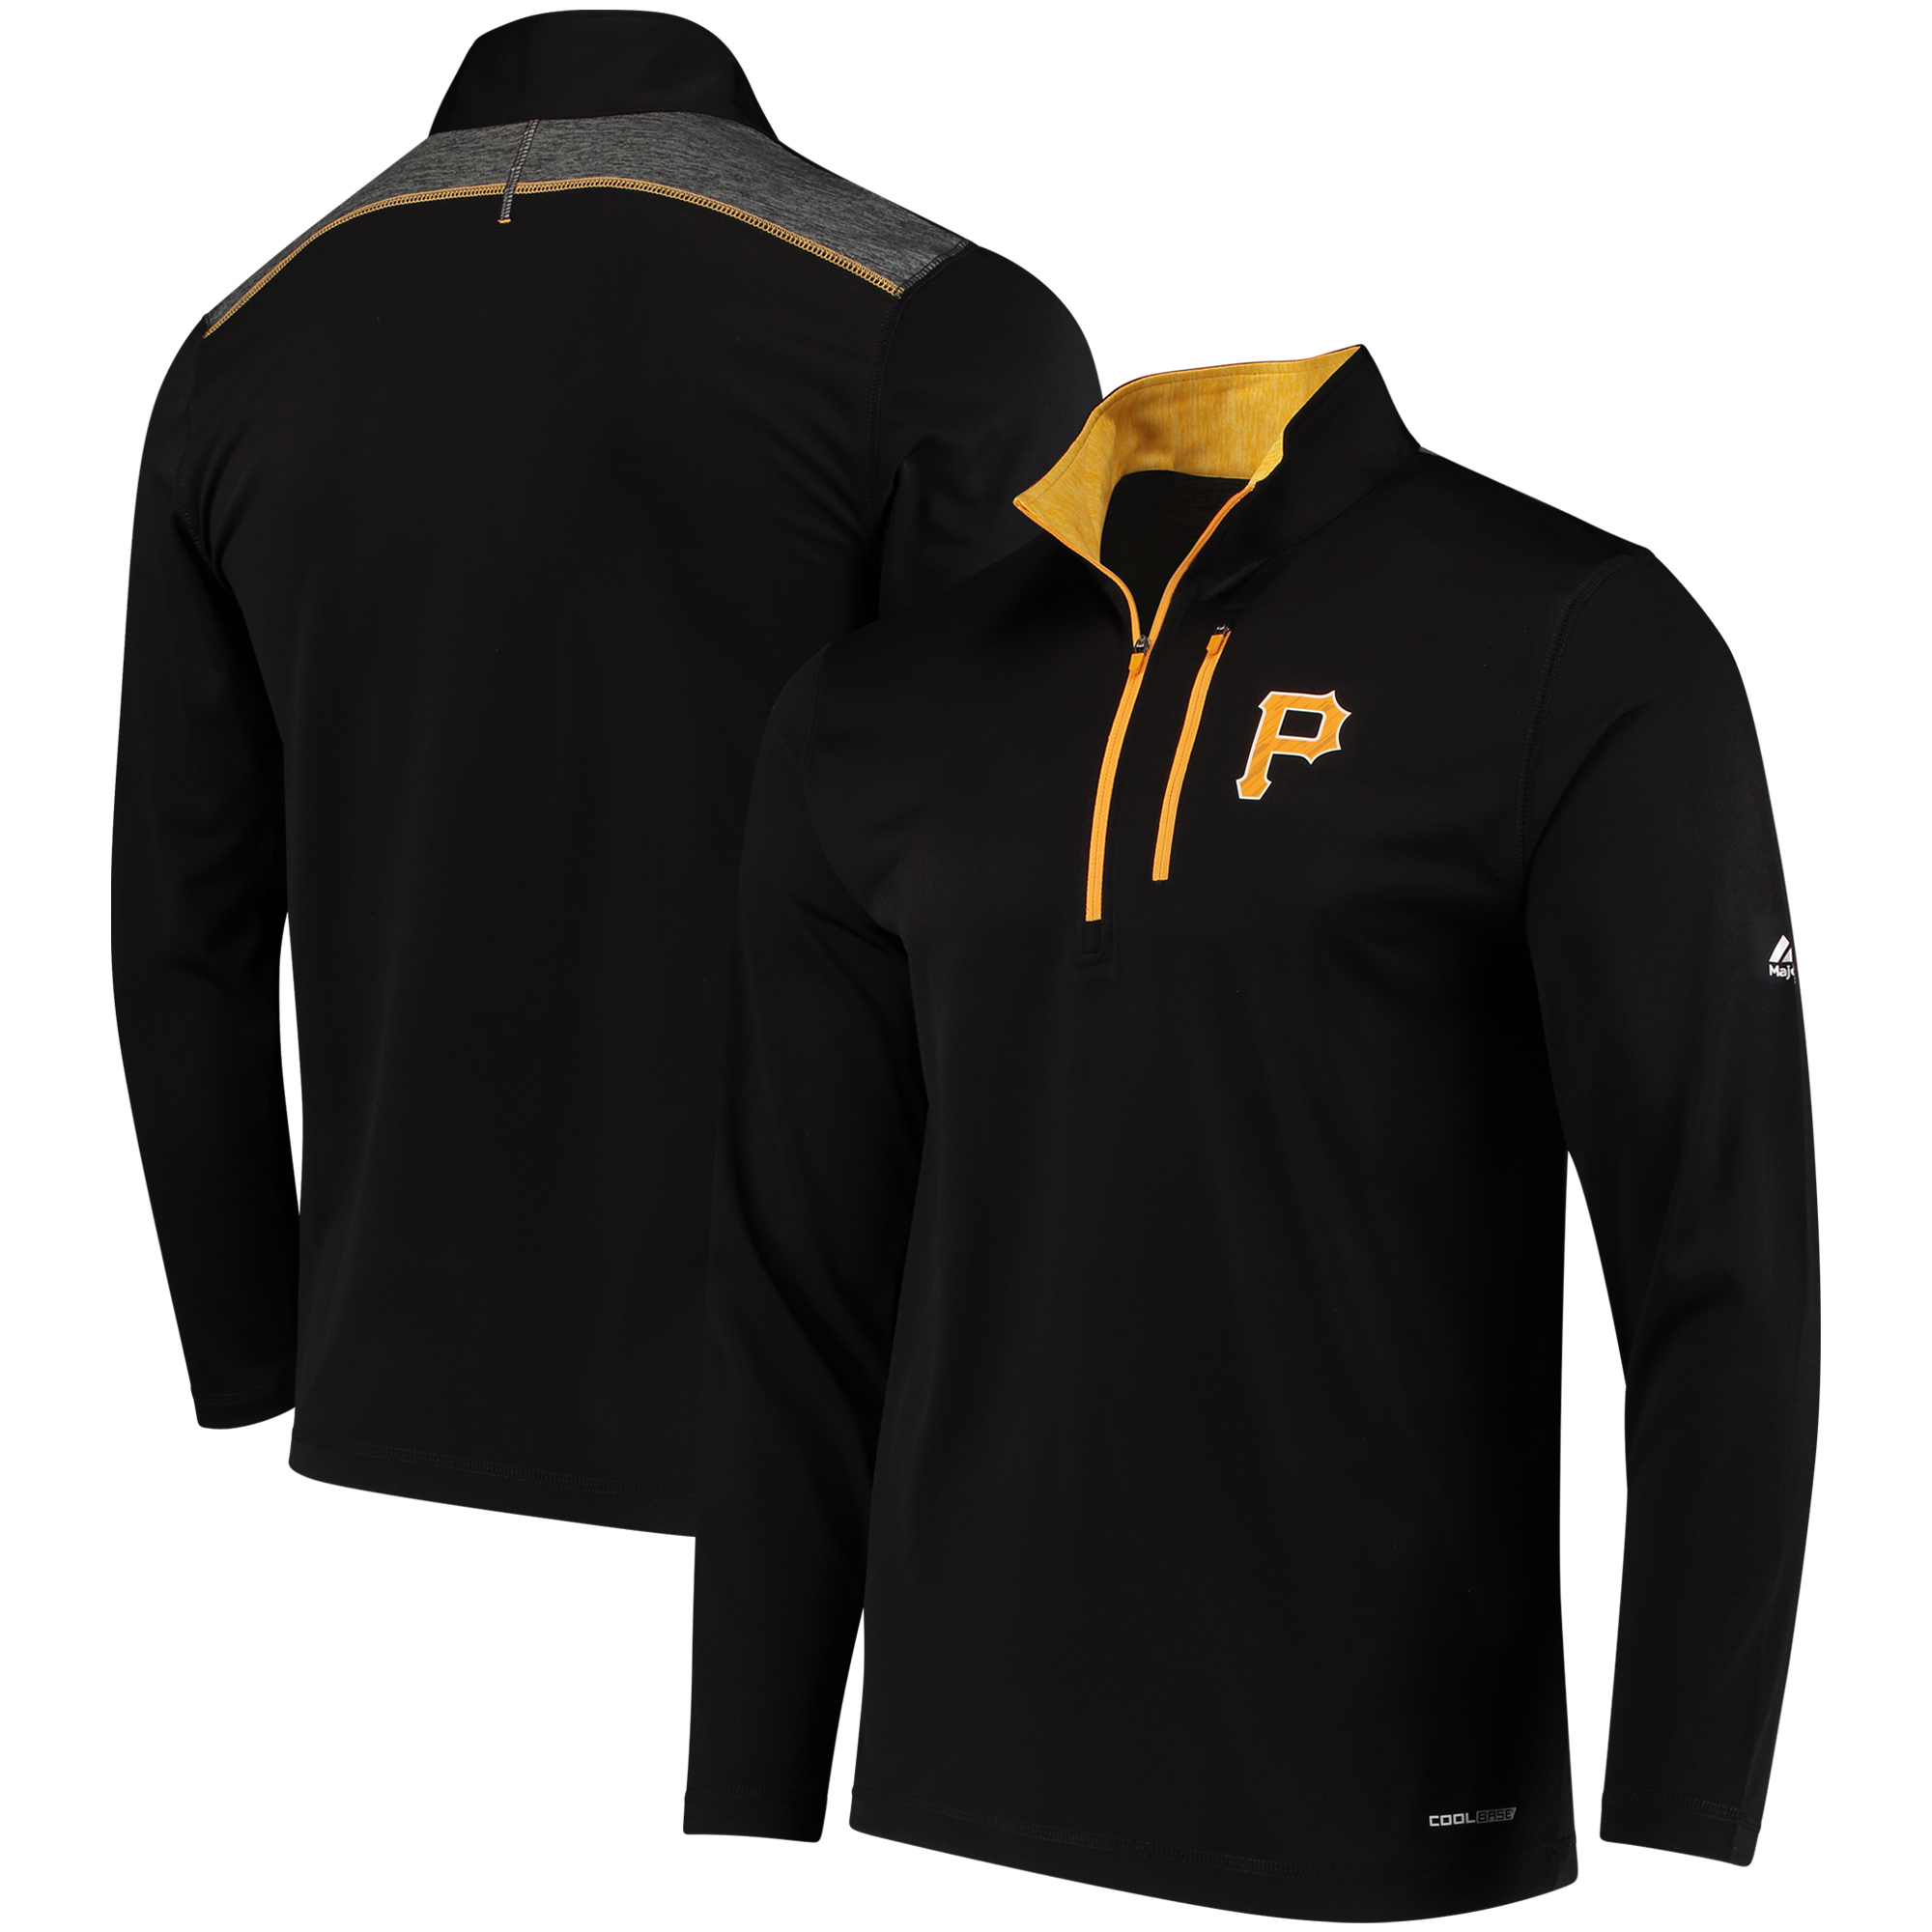 Pittsburgh Pirates Majestic Half-Zip Pullover Top - Black